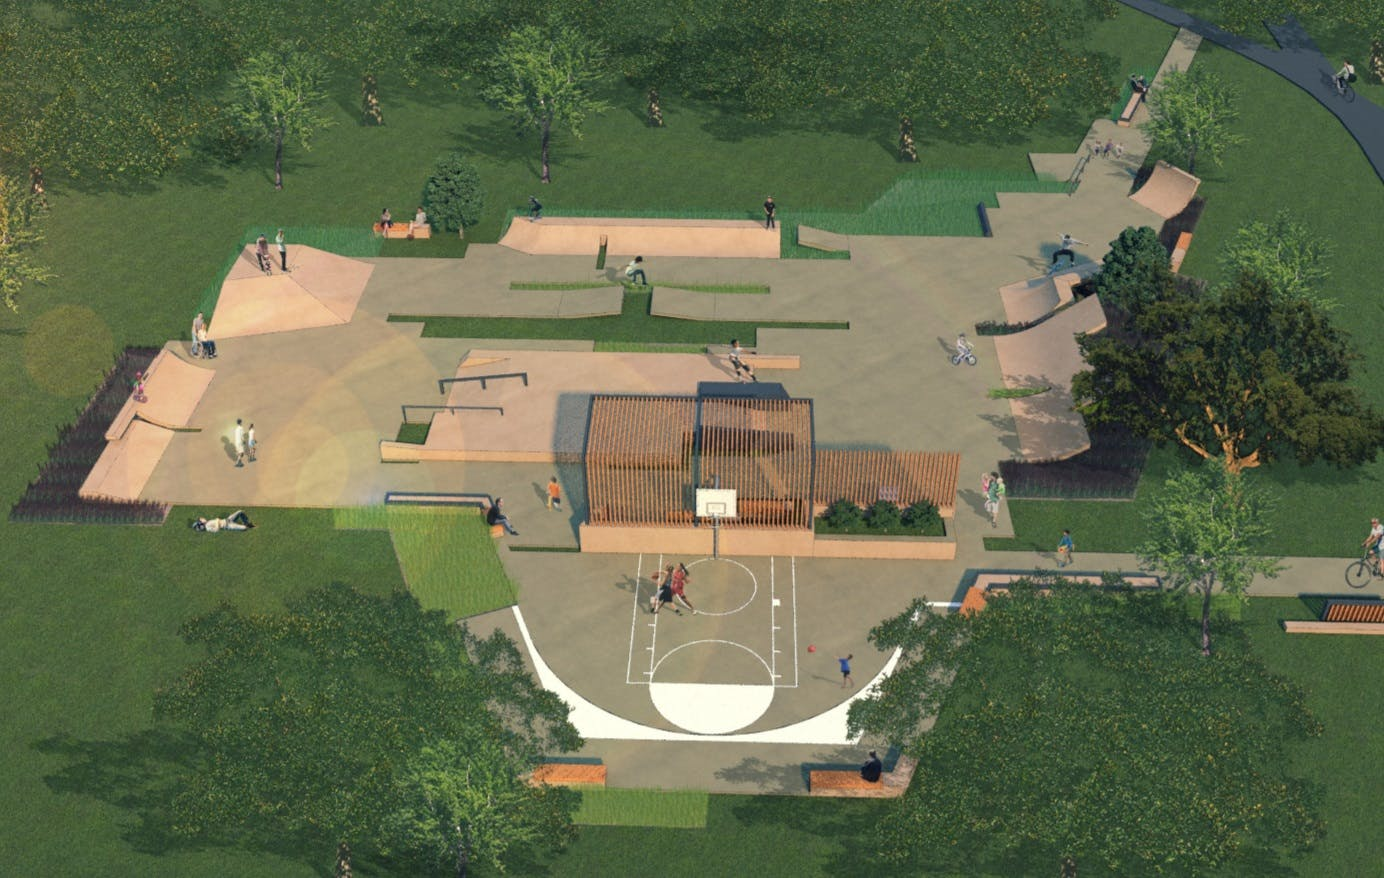 Concept Plan For Rushcutters Bay Park Youth Recreation Area 2